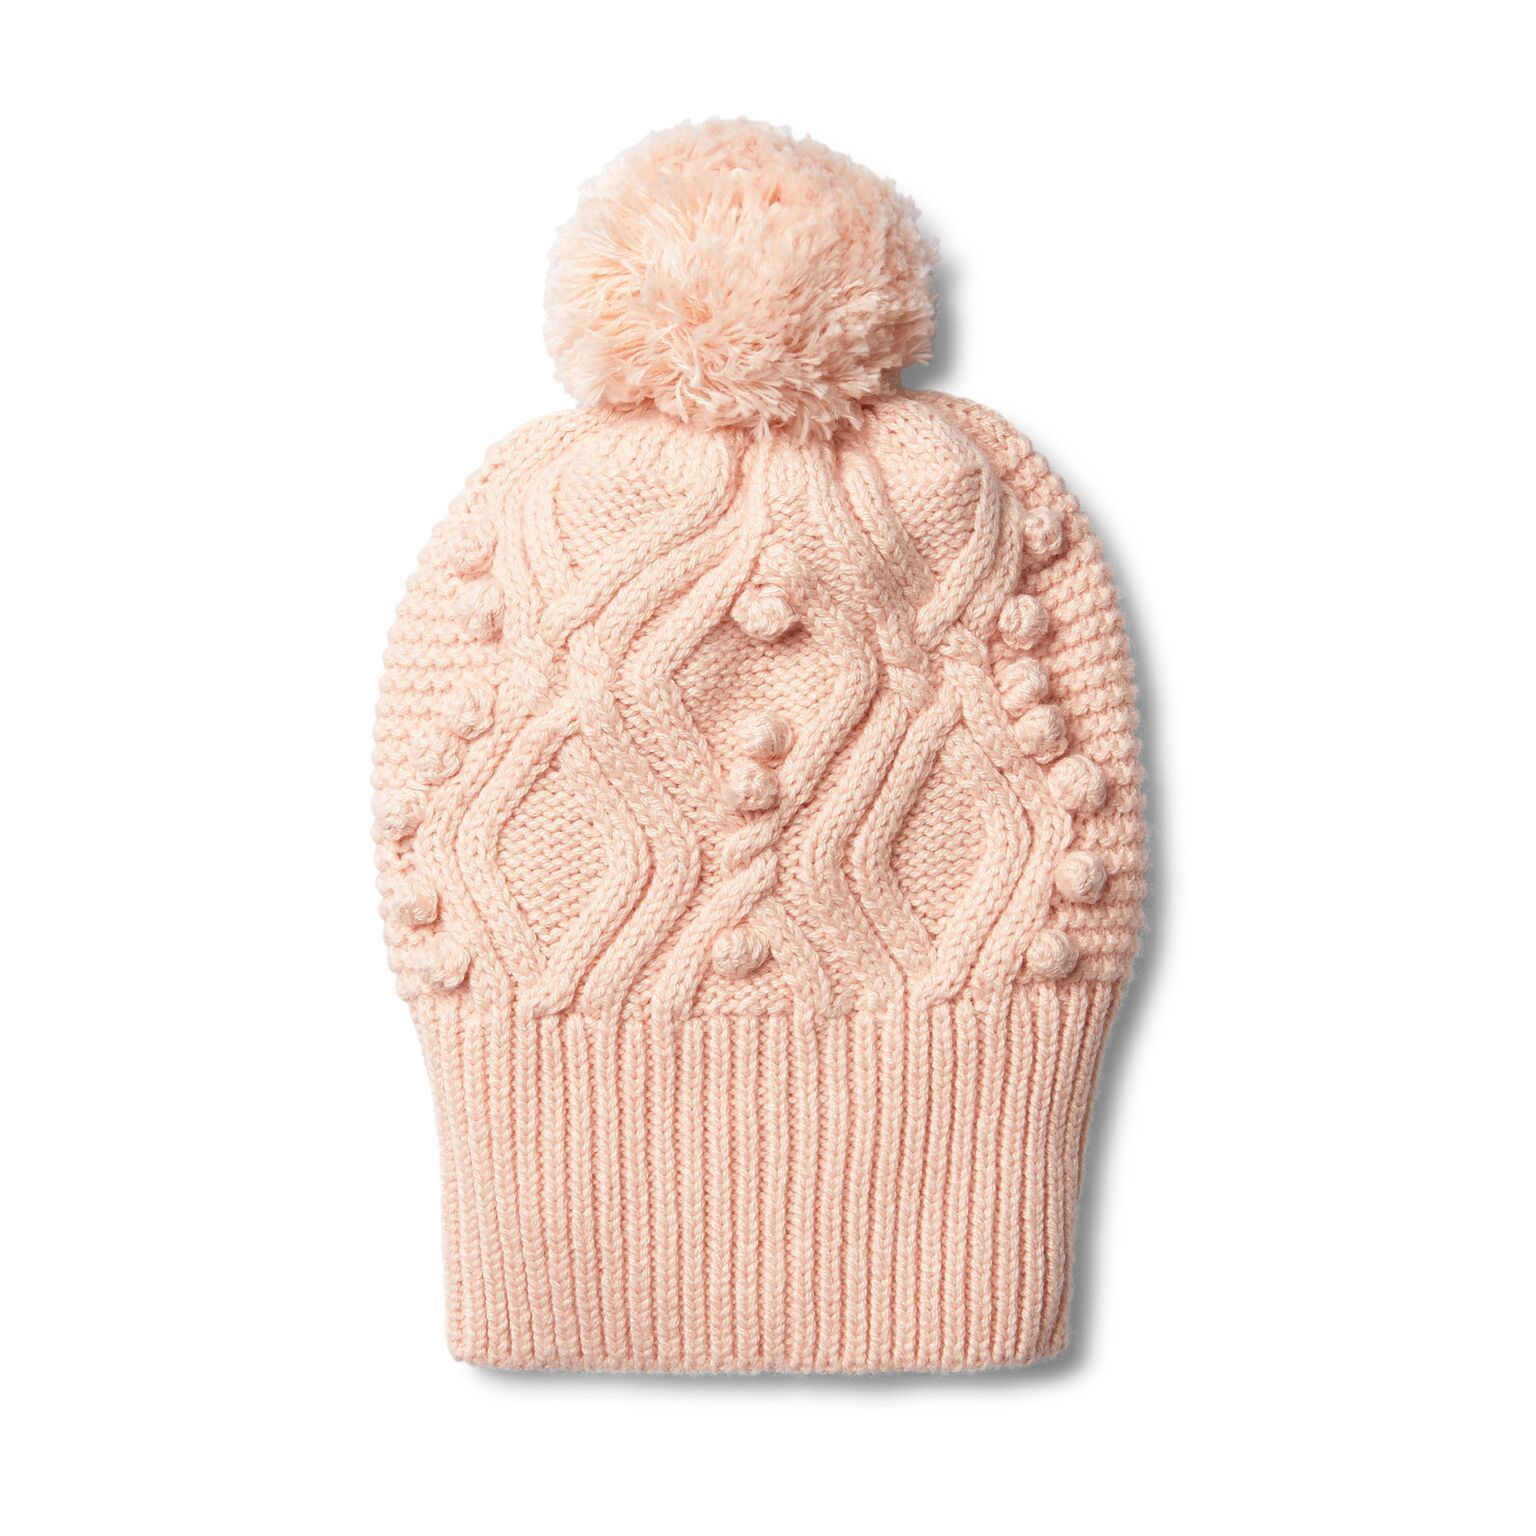 WF Peachy pink cable knitted pom pom hat